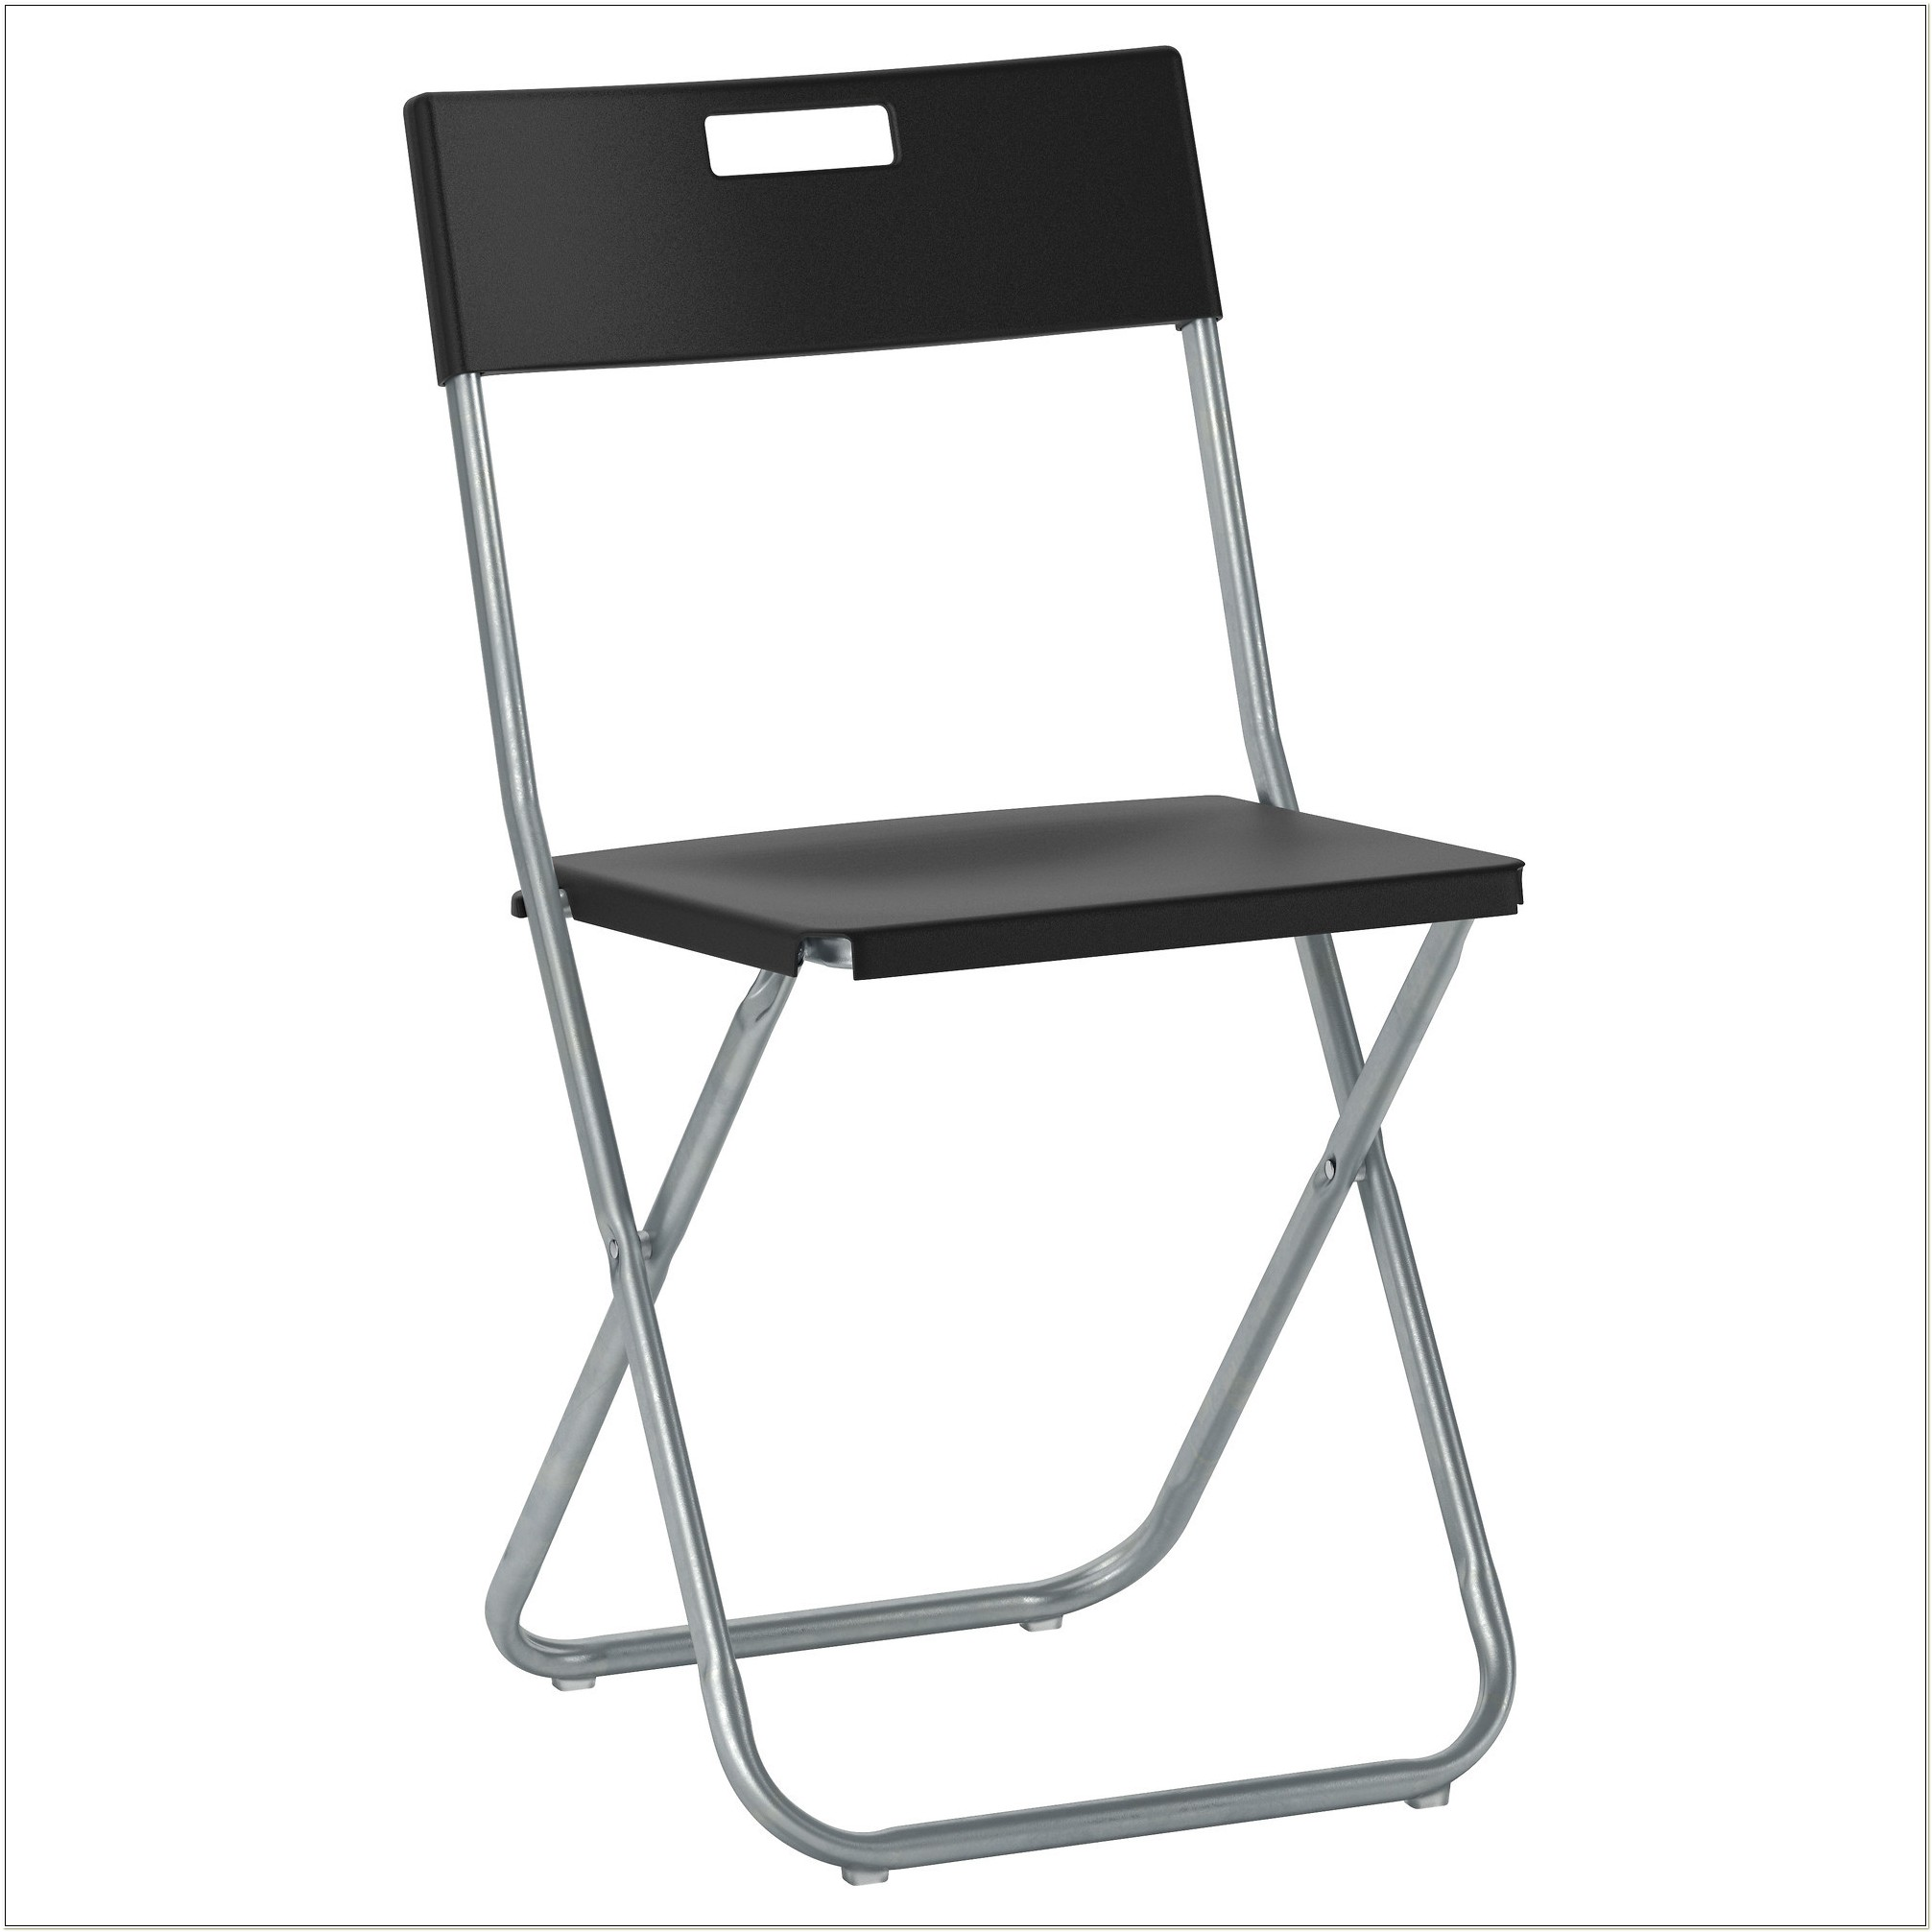 Black Padded Folding Chairs Target